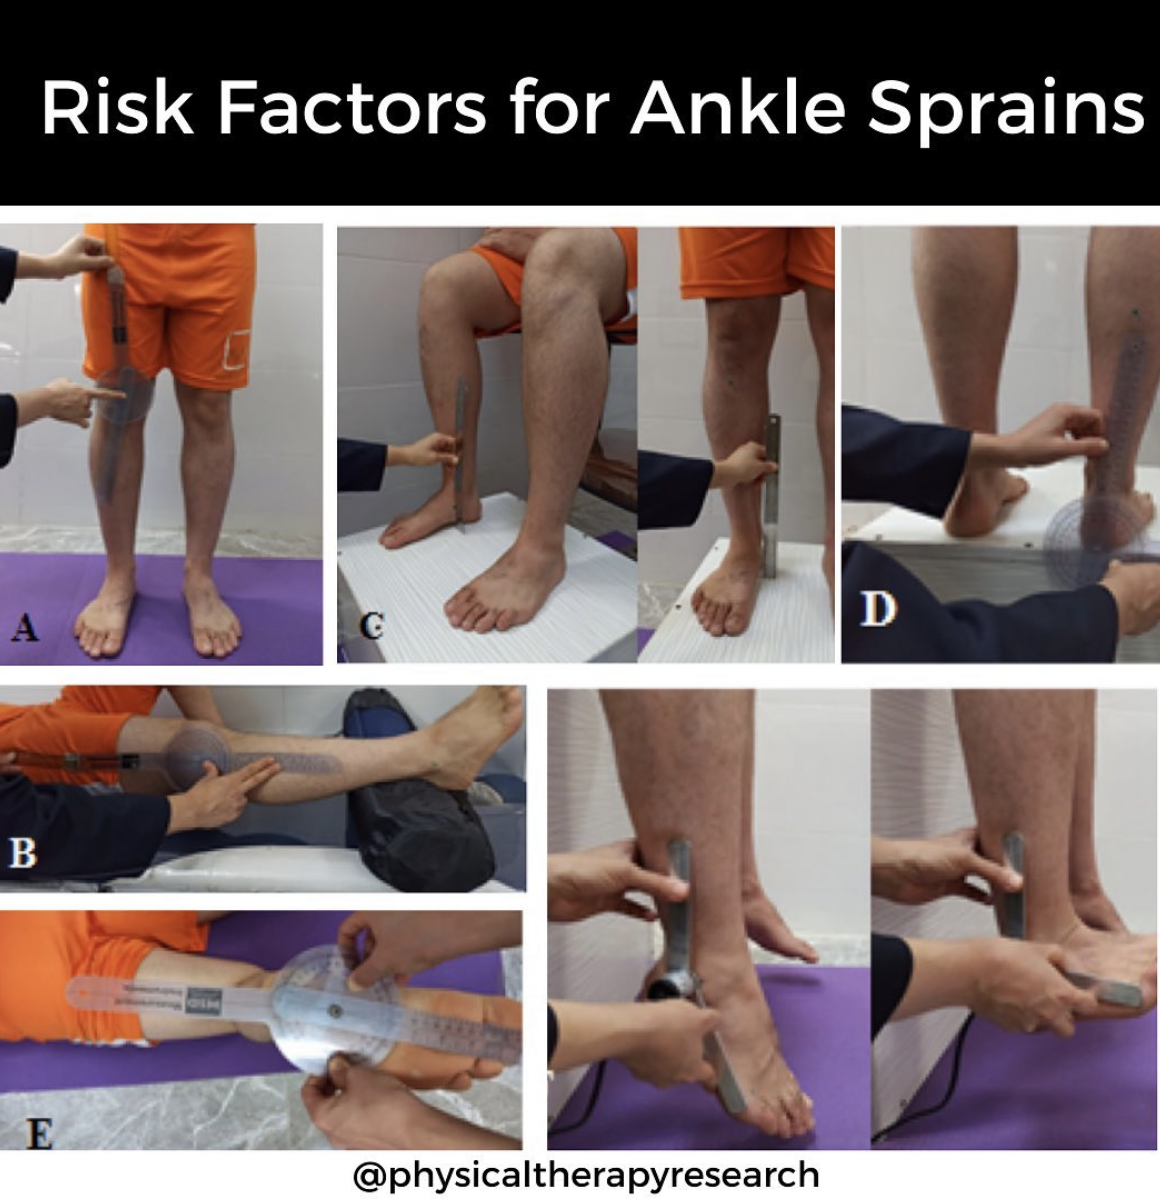 Risk Factors for Ankle Sprains - themanualtherapist.com